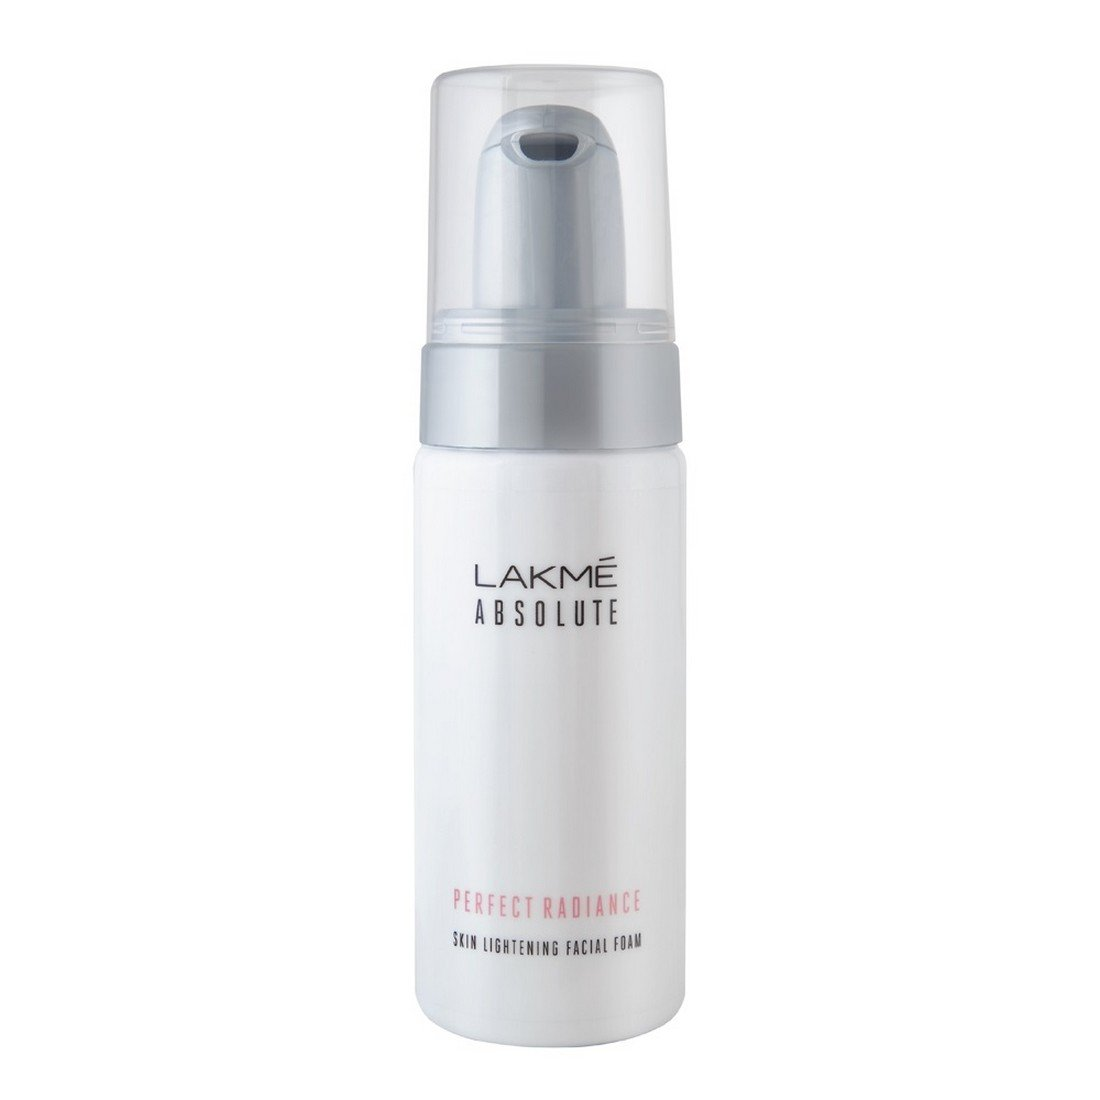 Lakme Absolute Perfect Radiance Facial Foam, 130 ml